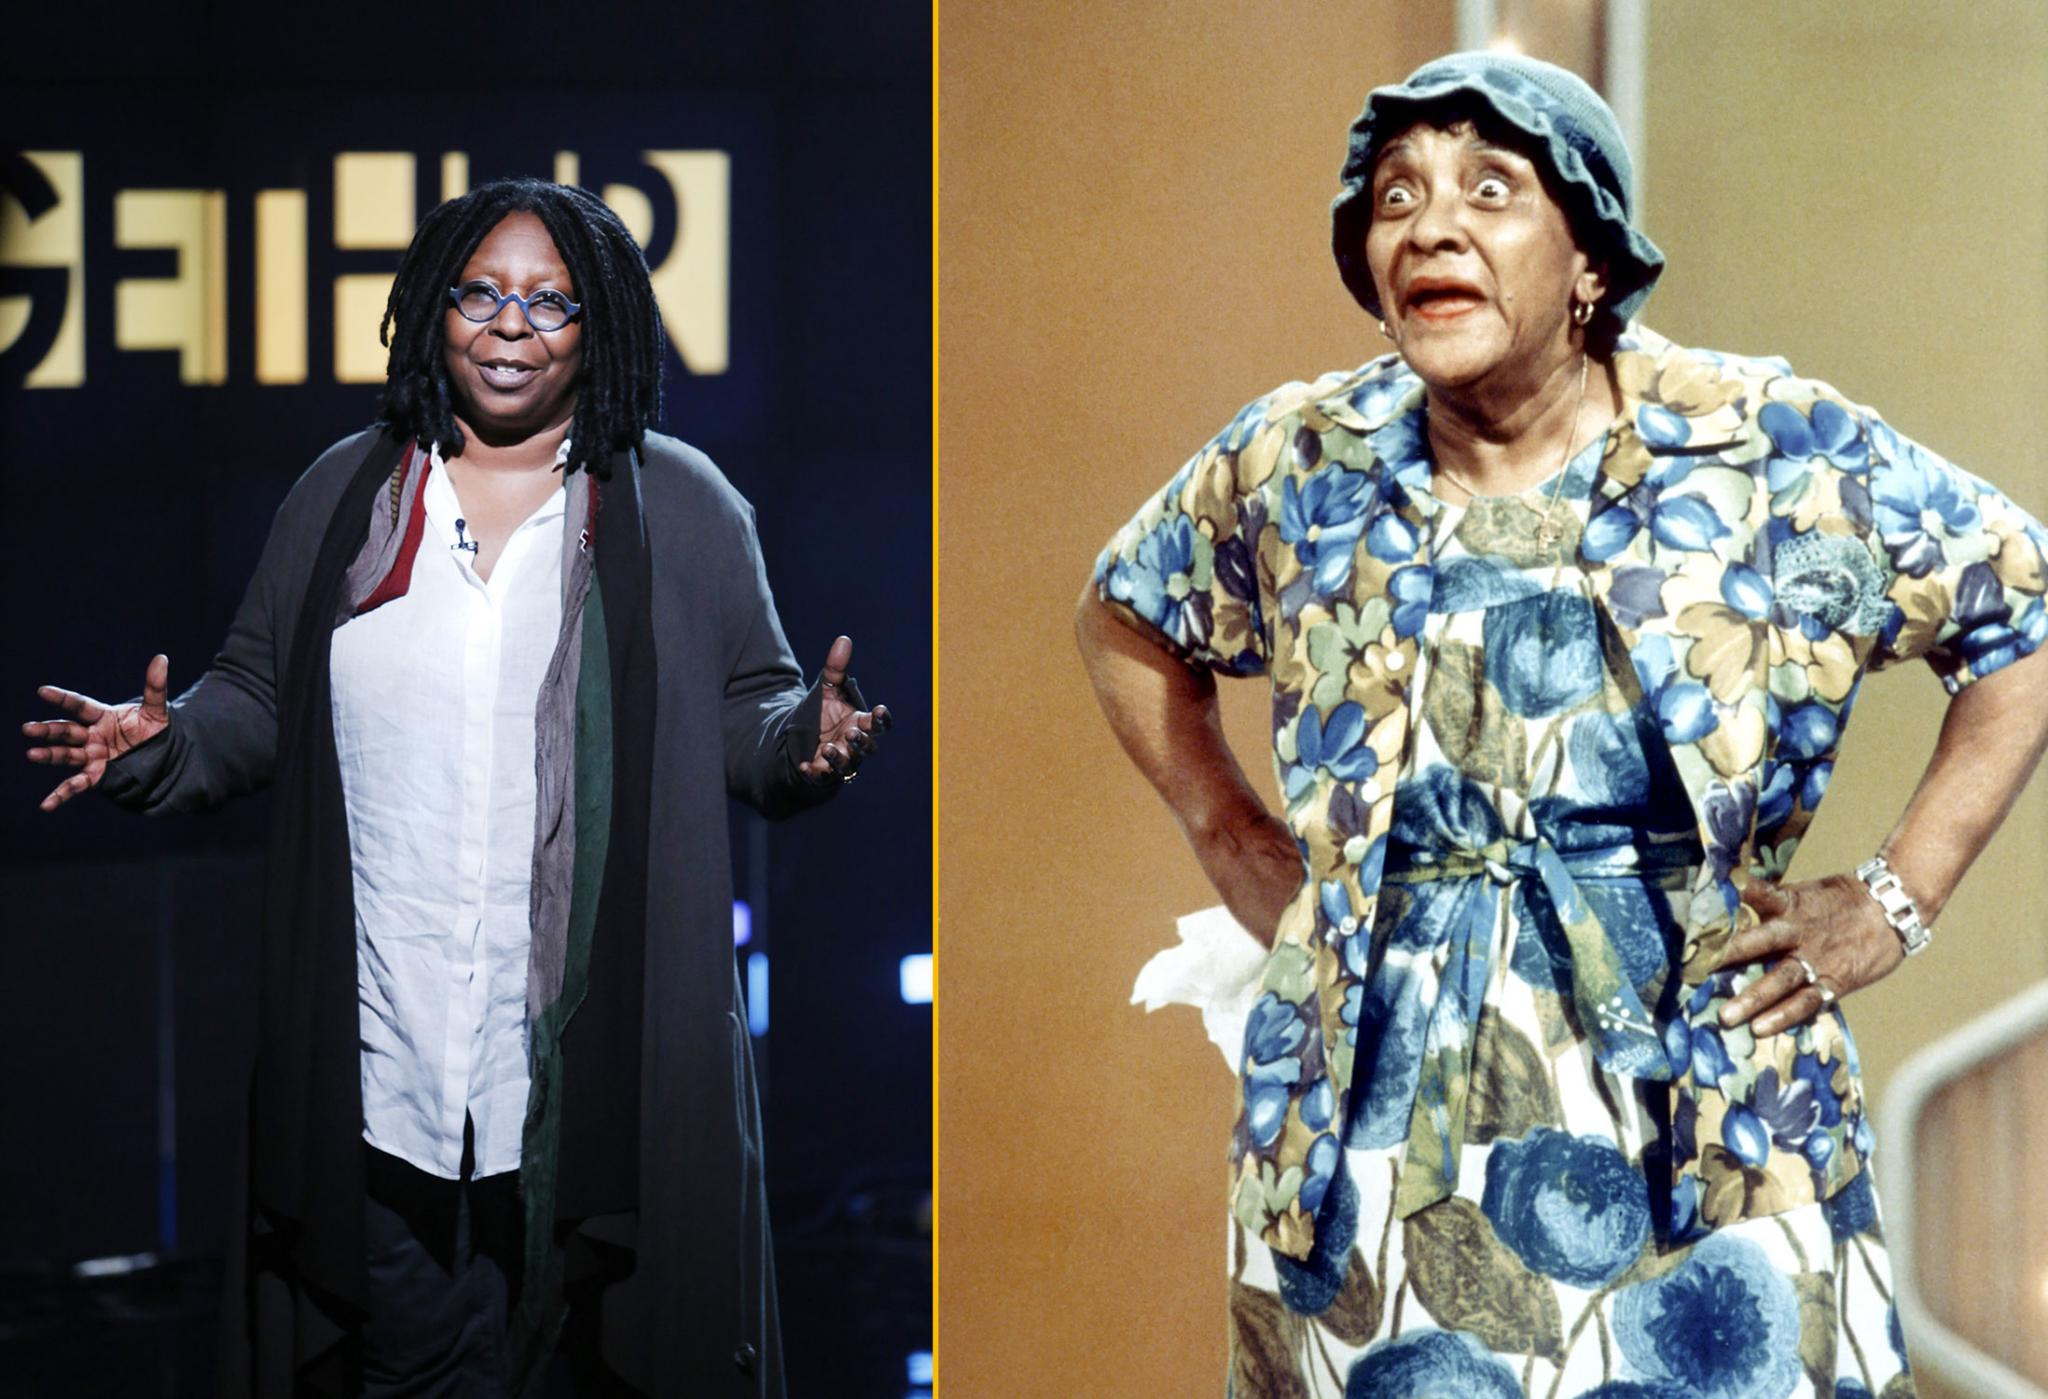 Exclusive whoopi goldberg on her moms mabley documentary and snls exclusive whoopi goldberg on her moms mabley documentary and snls lack of diversity m4hsunfo